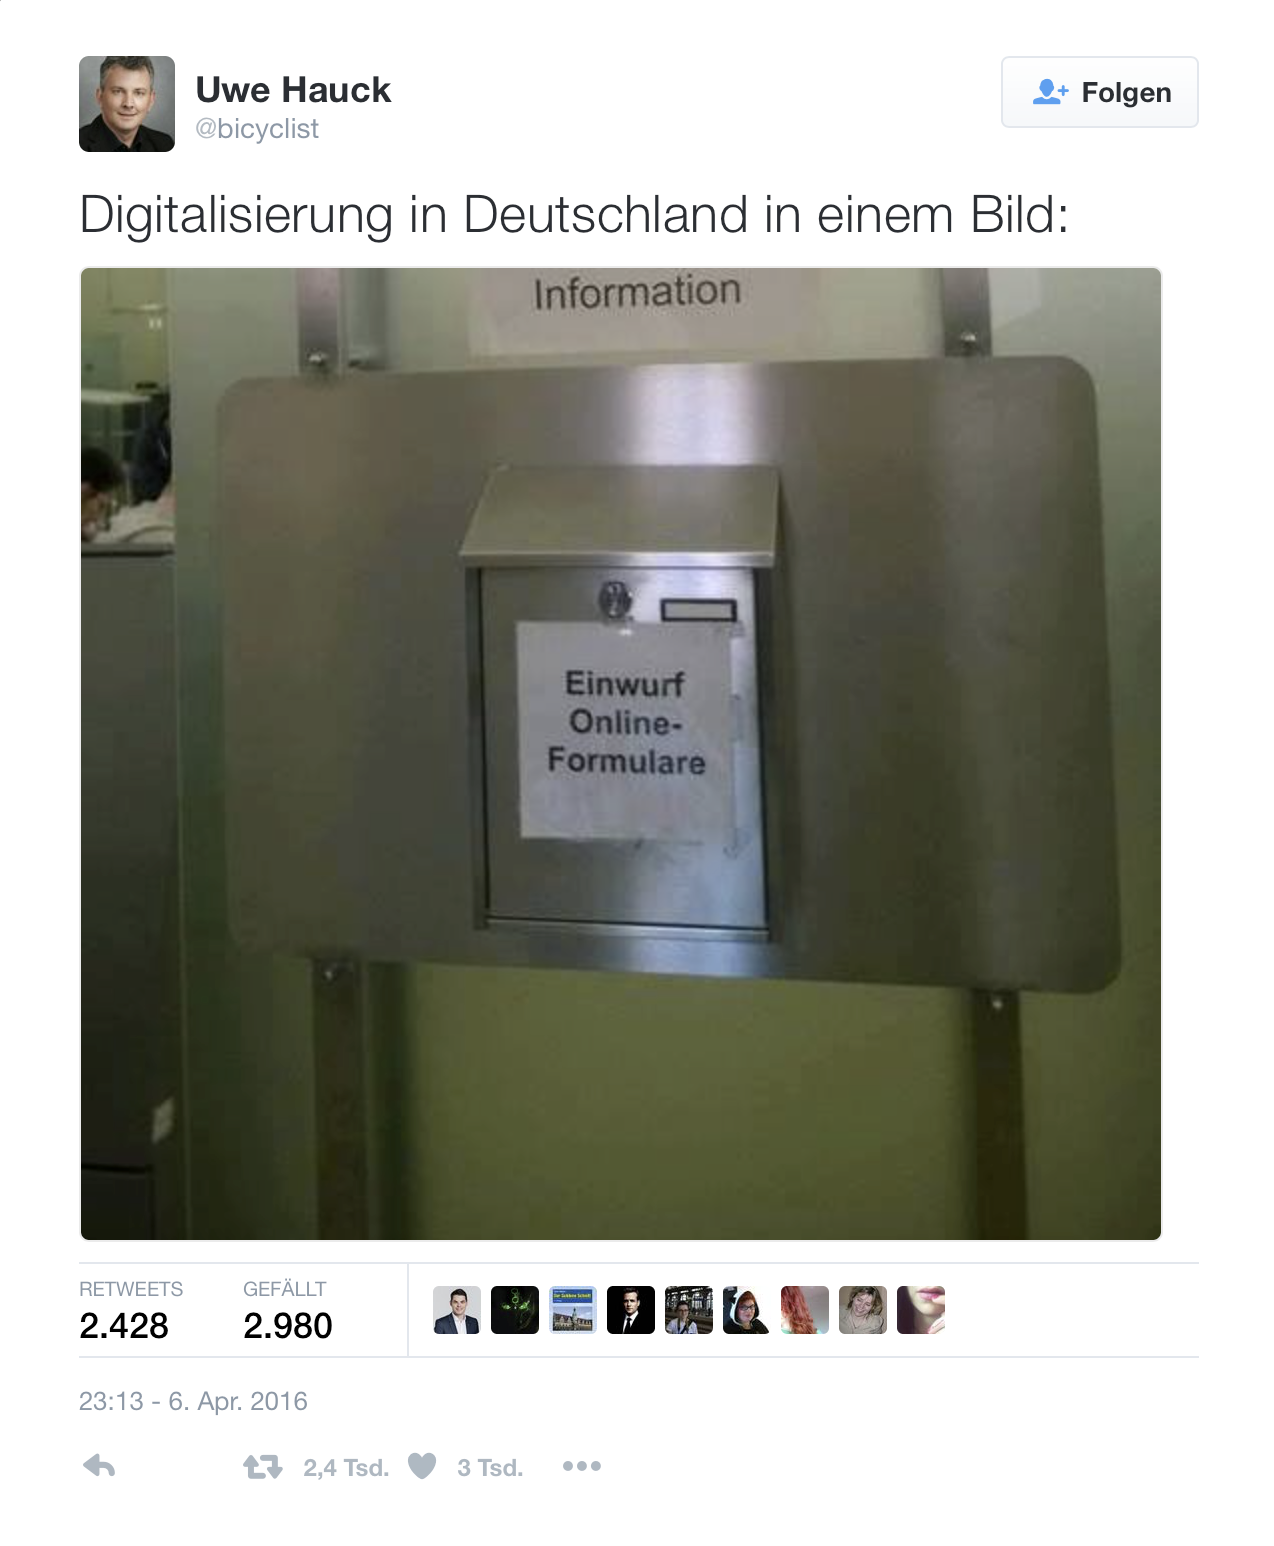 Tweet Digitalisierung